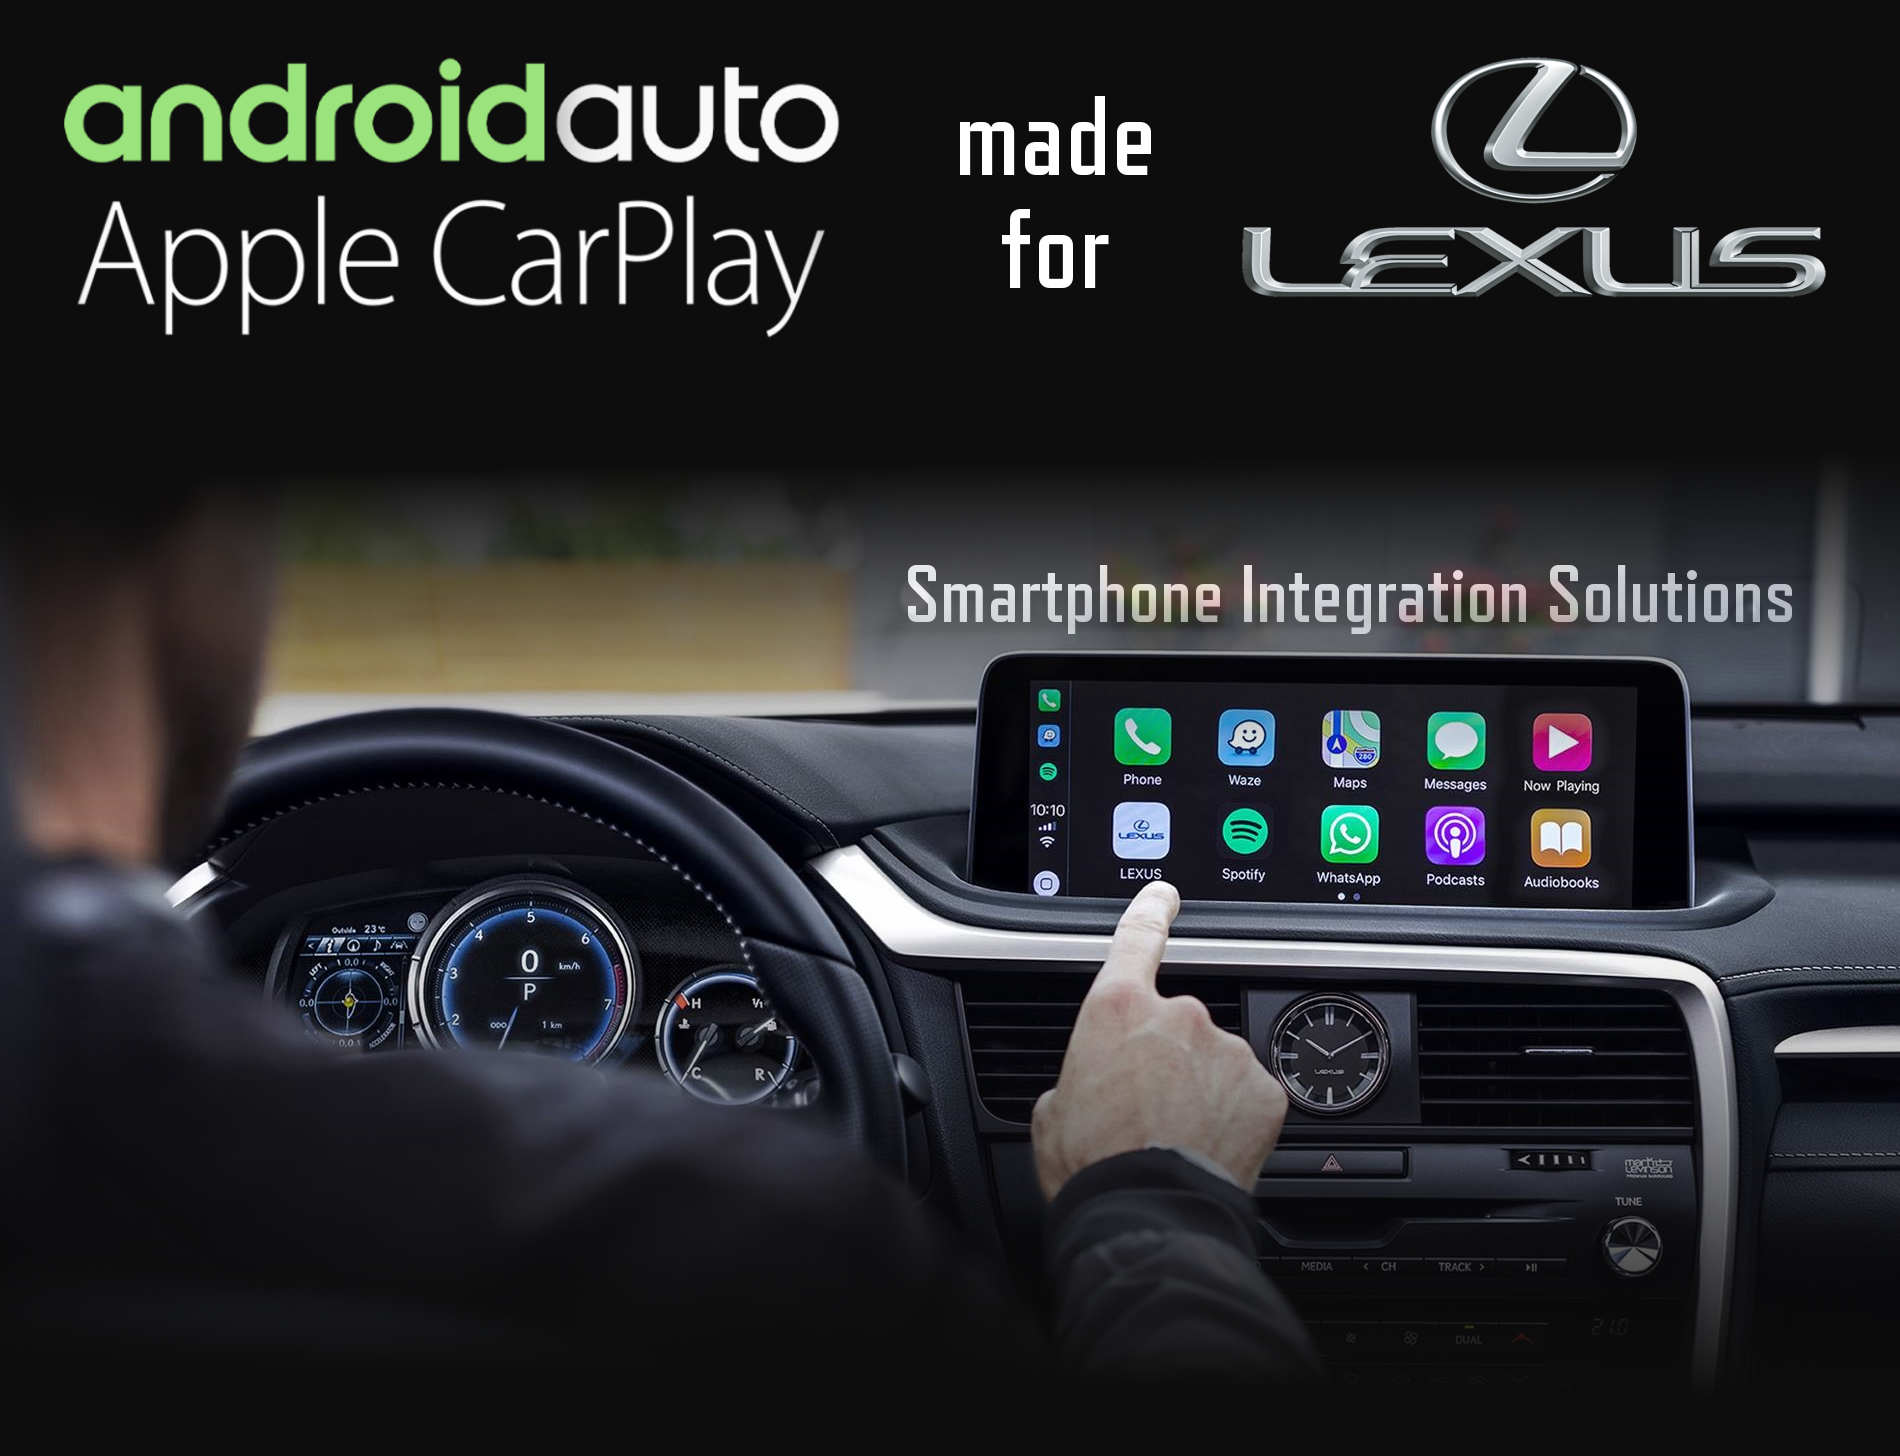 Aftermarket Apple Carplay, Android Auto integration for Lexus factory radio screens for, CT200H, CT, ES330, ES350, ES300h, ES350, ES, GS200t, GS350, GS450h/f, GS, GX460, GX470, HS250h, IS, IS250, IS350C/F, IS C/F, IS250, IS200t, IS250, IS300, IS350, IS200t, IS250, IS300, IS350, IS, LC, LFA, LS430, LS460, LS600HL, LS460, LS600HL, LS600H, LS, LX460, LX600HL, LX470, LX570, LX570, LX570, LX, NX200t, NX300h, NX200t, NX300h, NX, RC200t, C300, C350f, RC200t, RC300, RC350f, RC, RX300 RX400h, RX330, RX350, RX450h, RX, UX